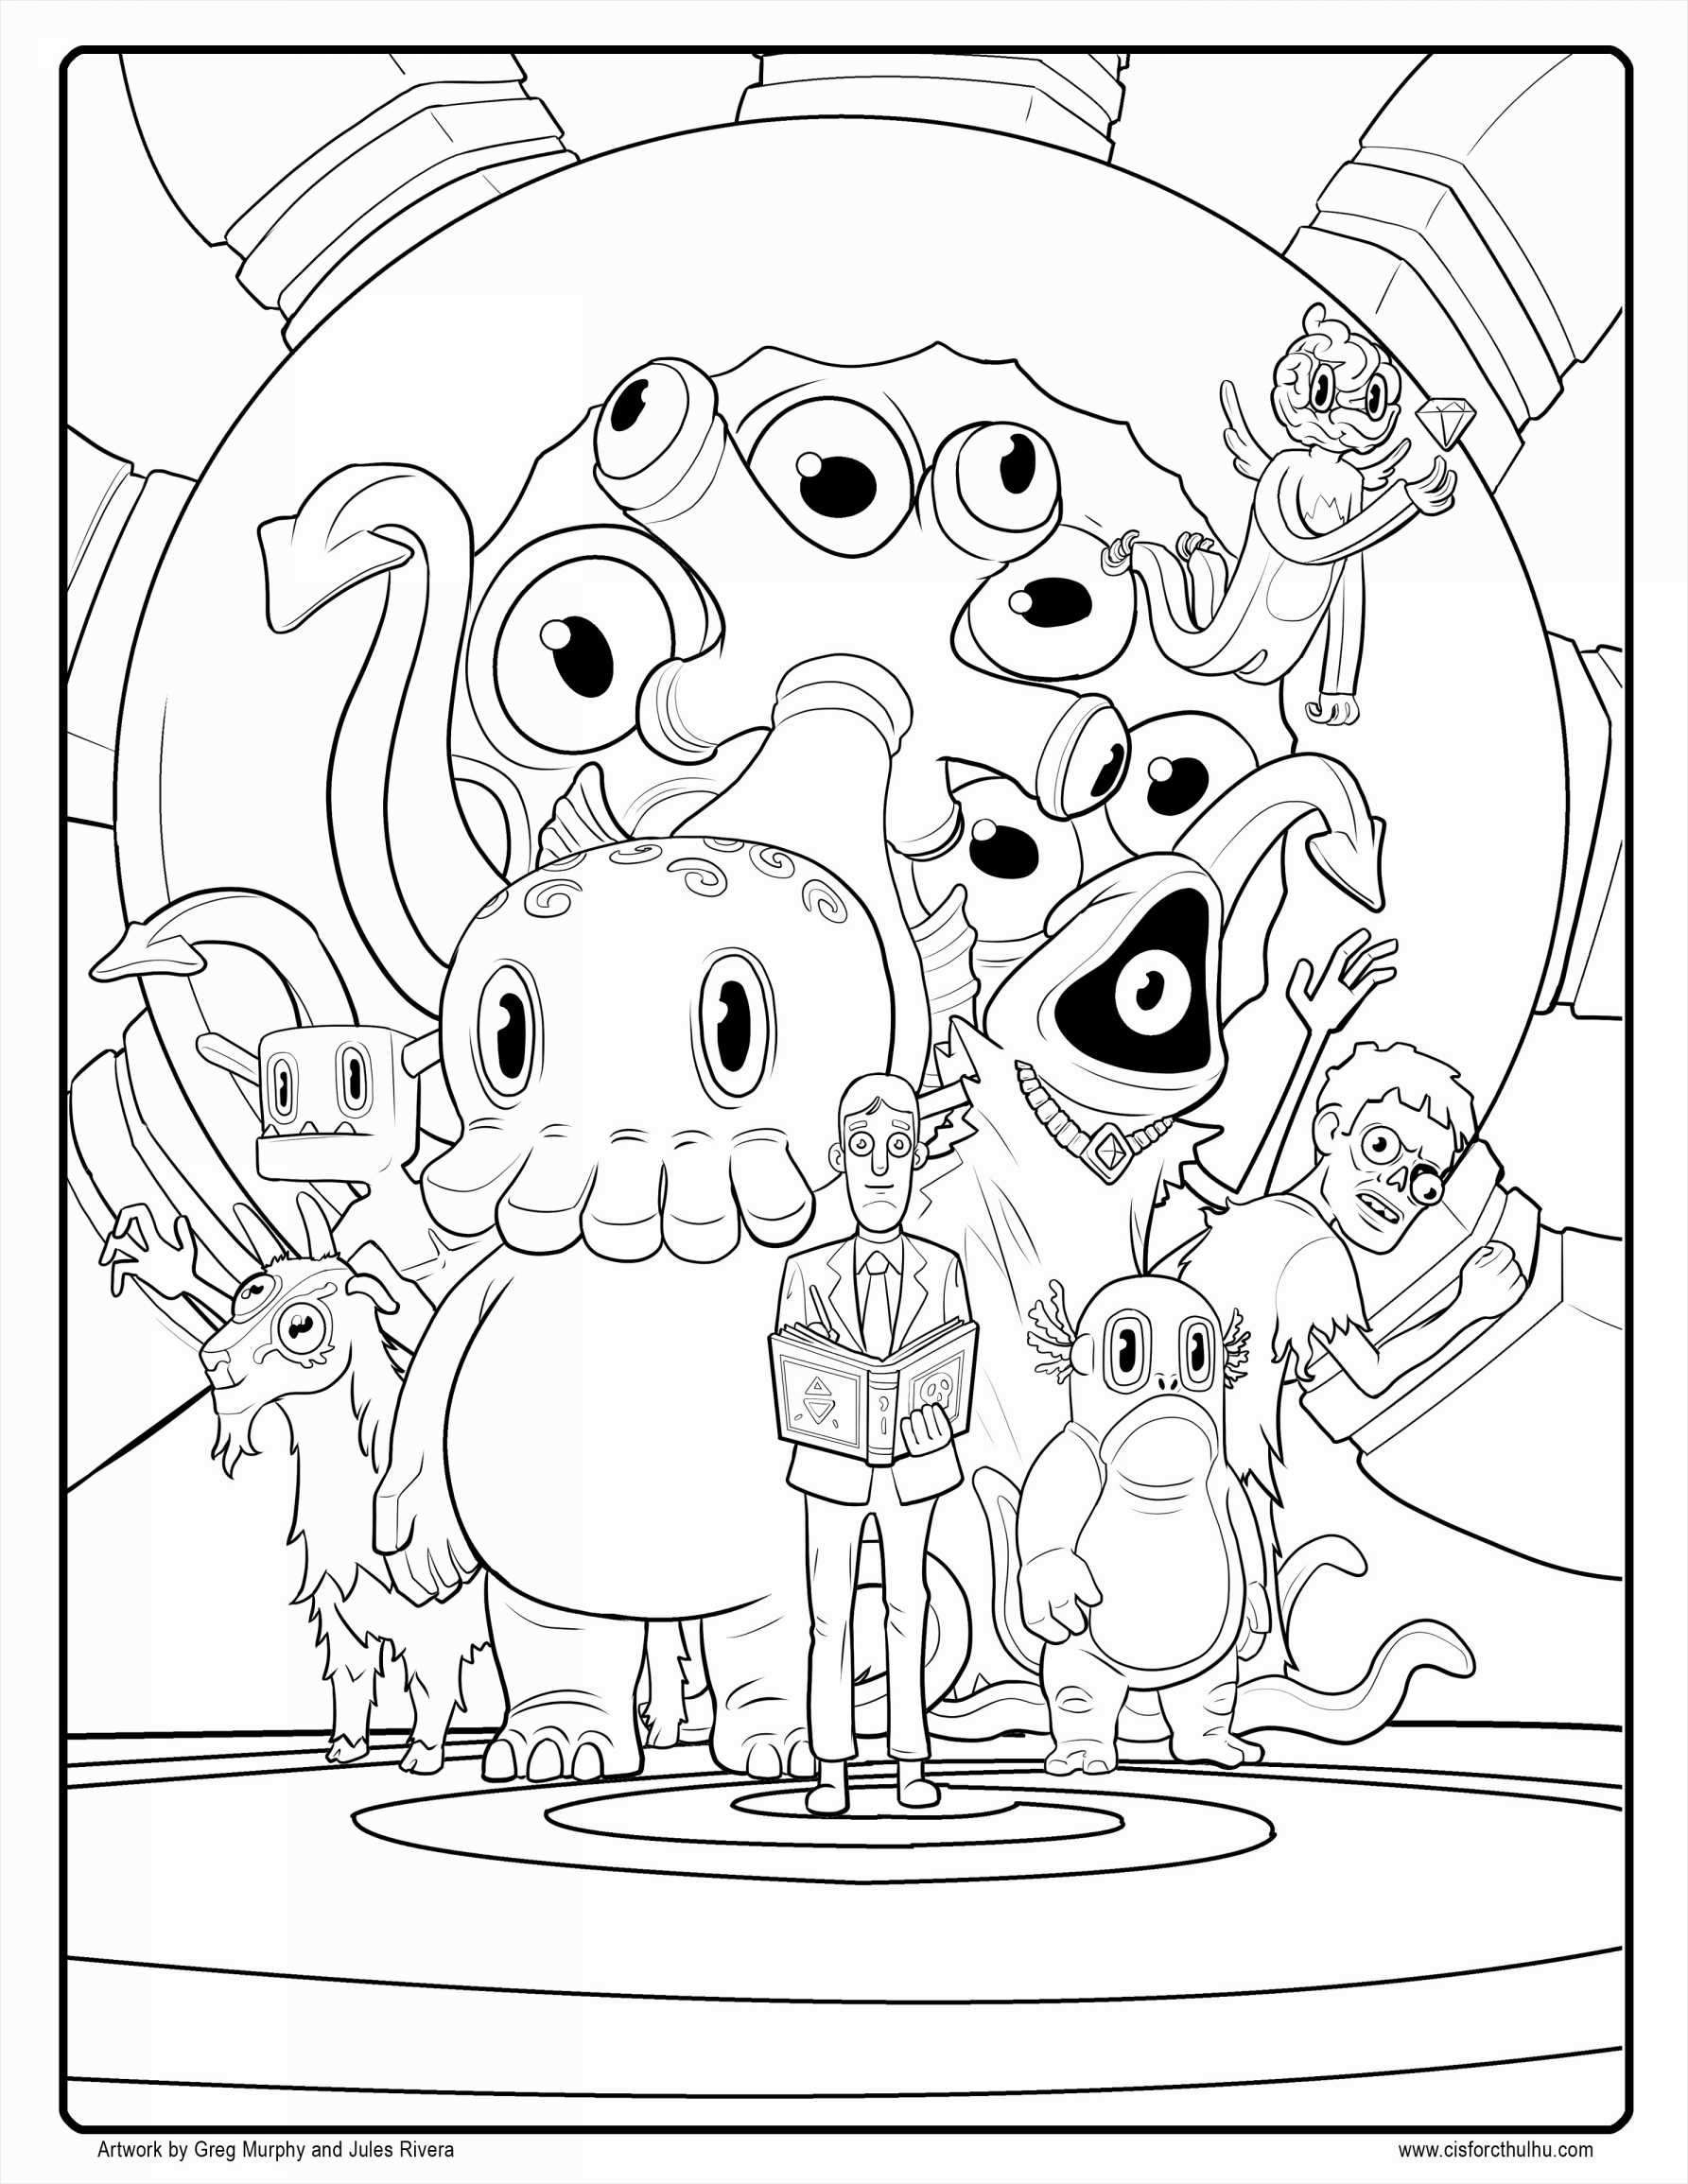 Christmas Coloring Pages Spongebob With Squarepants Pagesaustralia